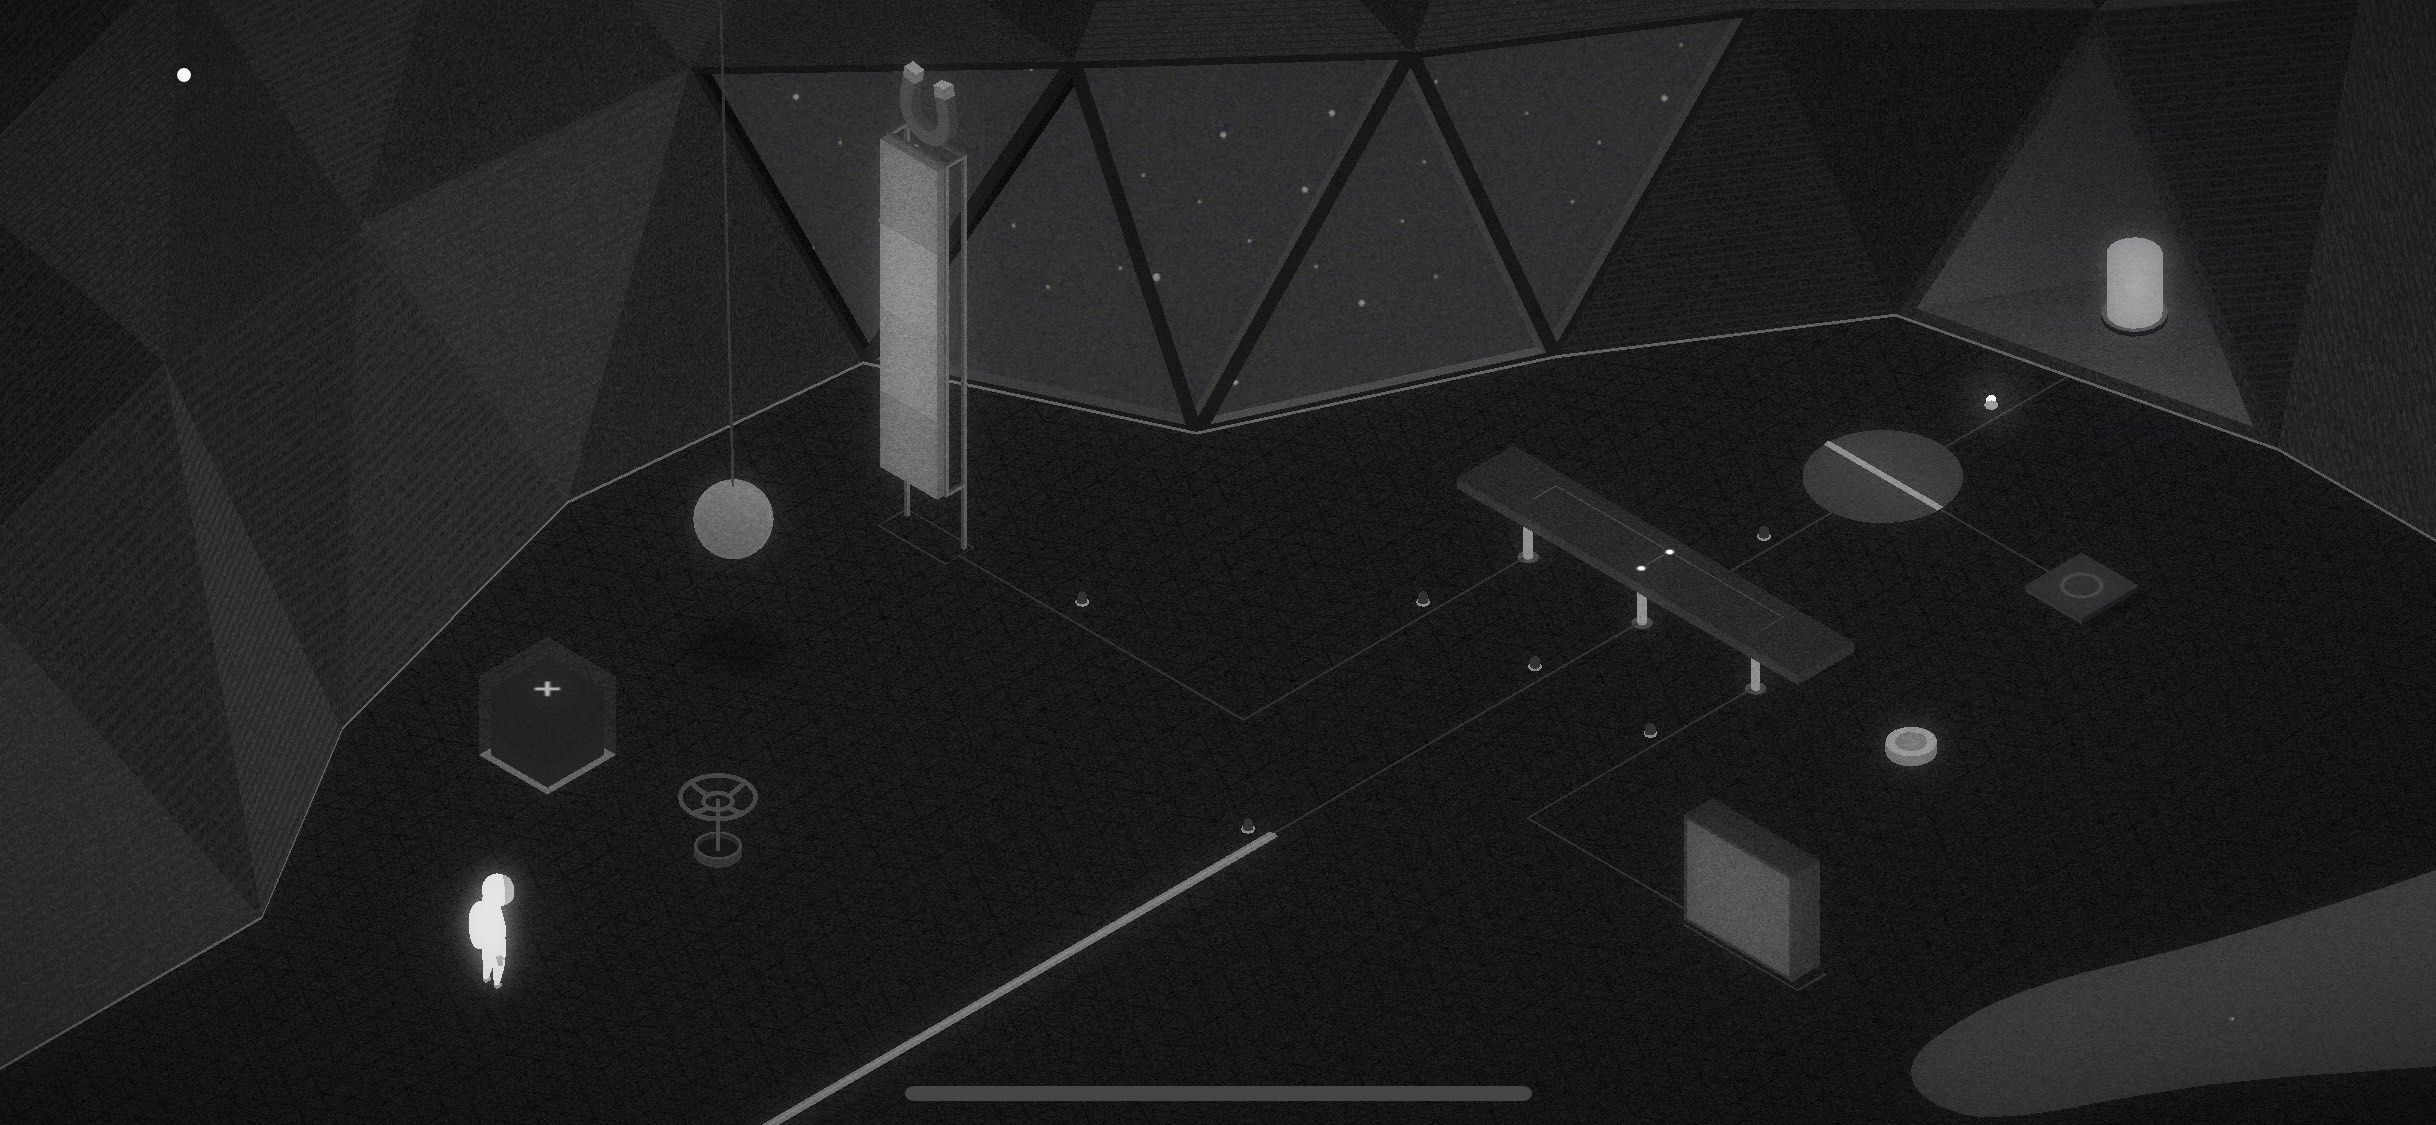 Screenshot from Starman